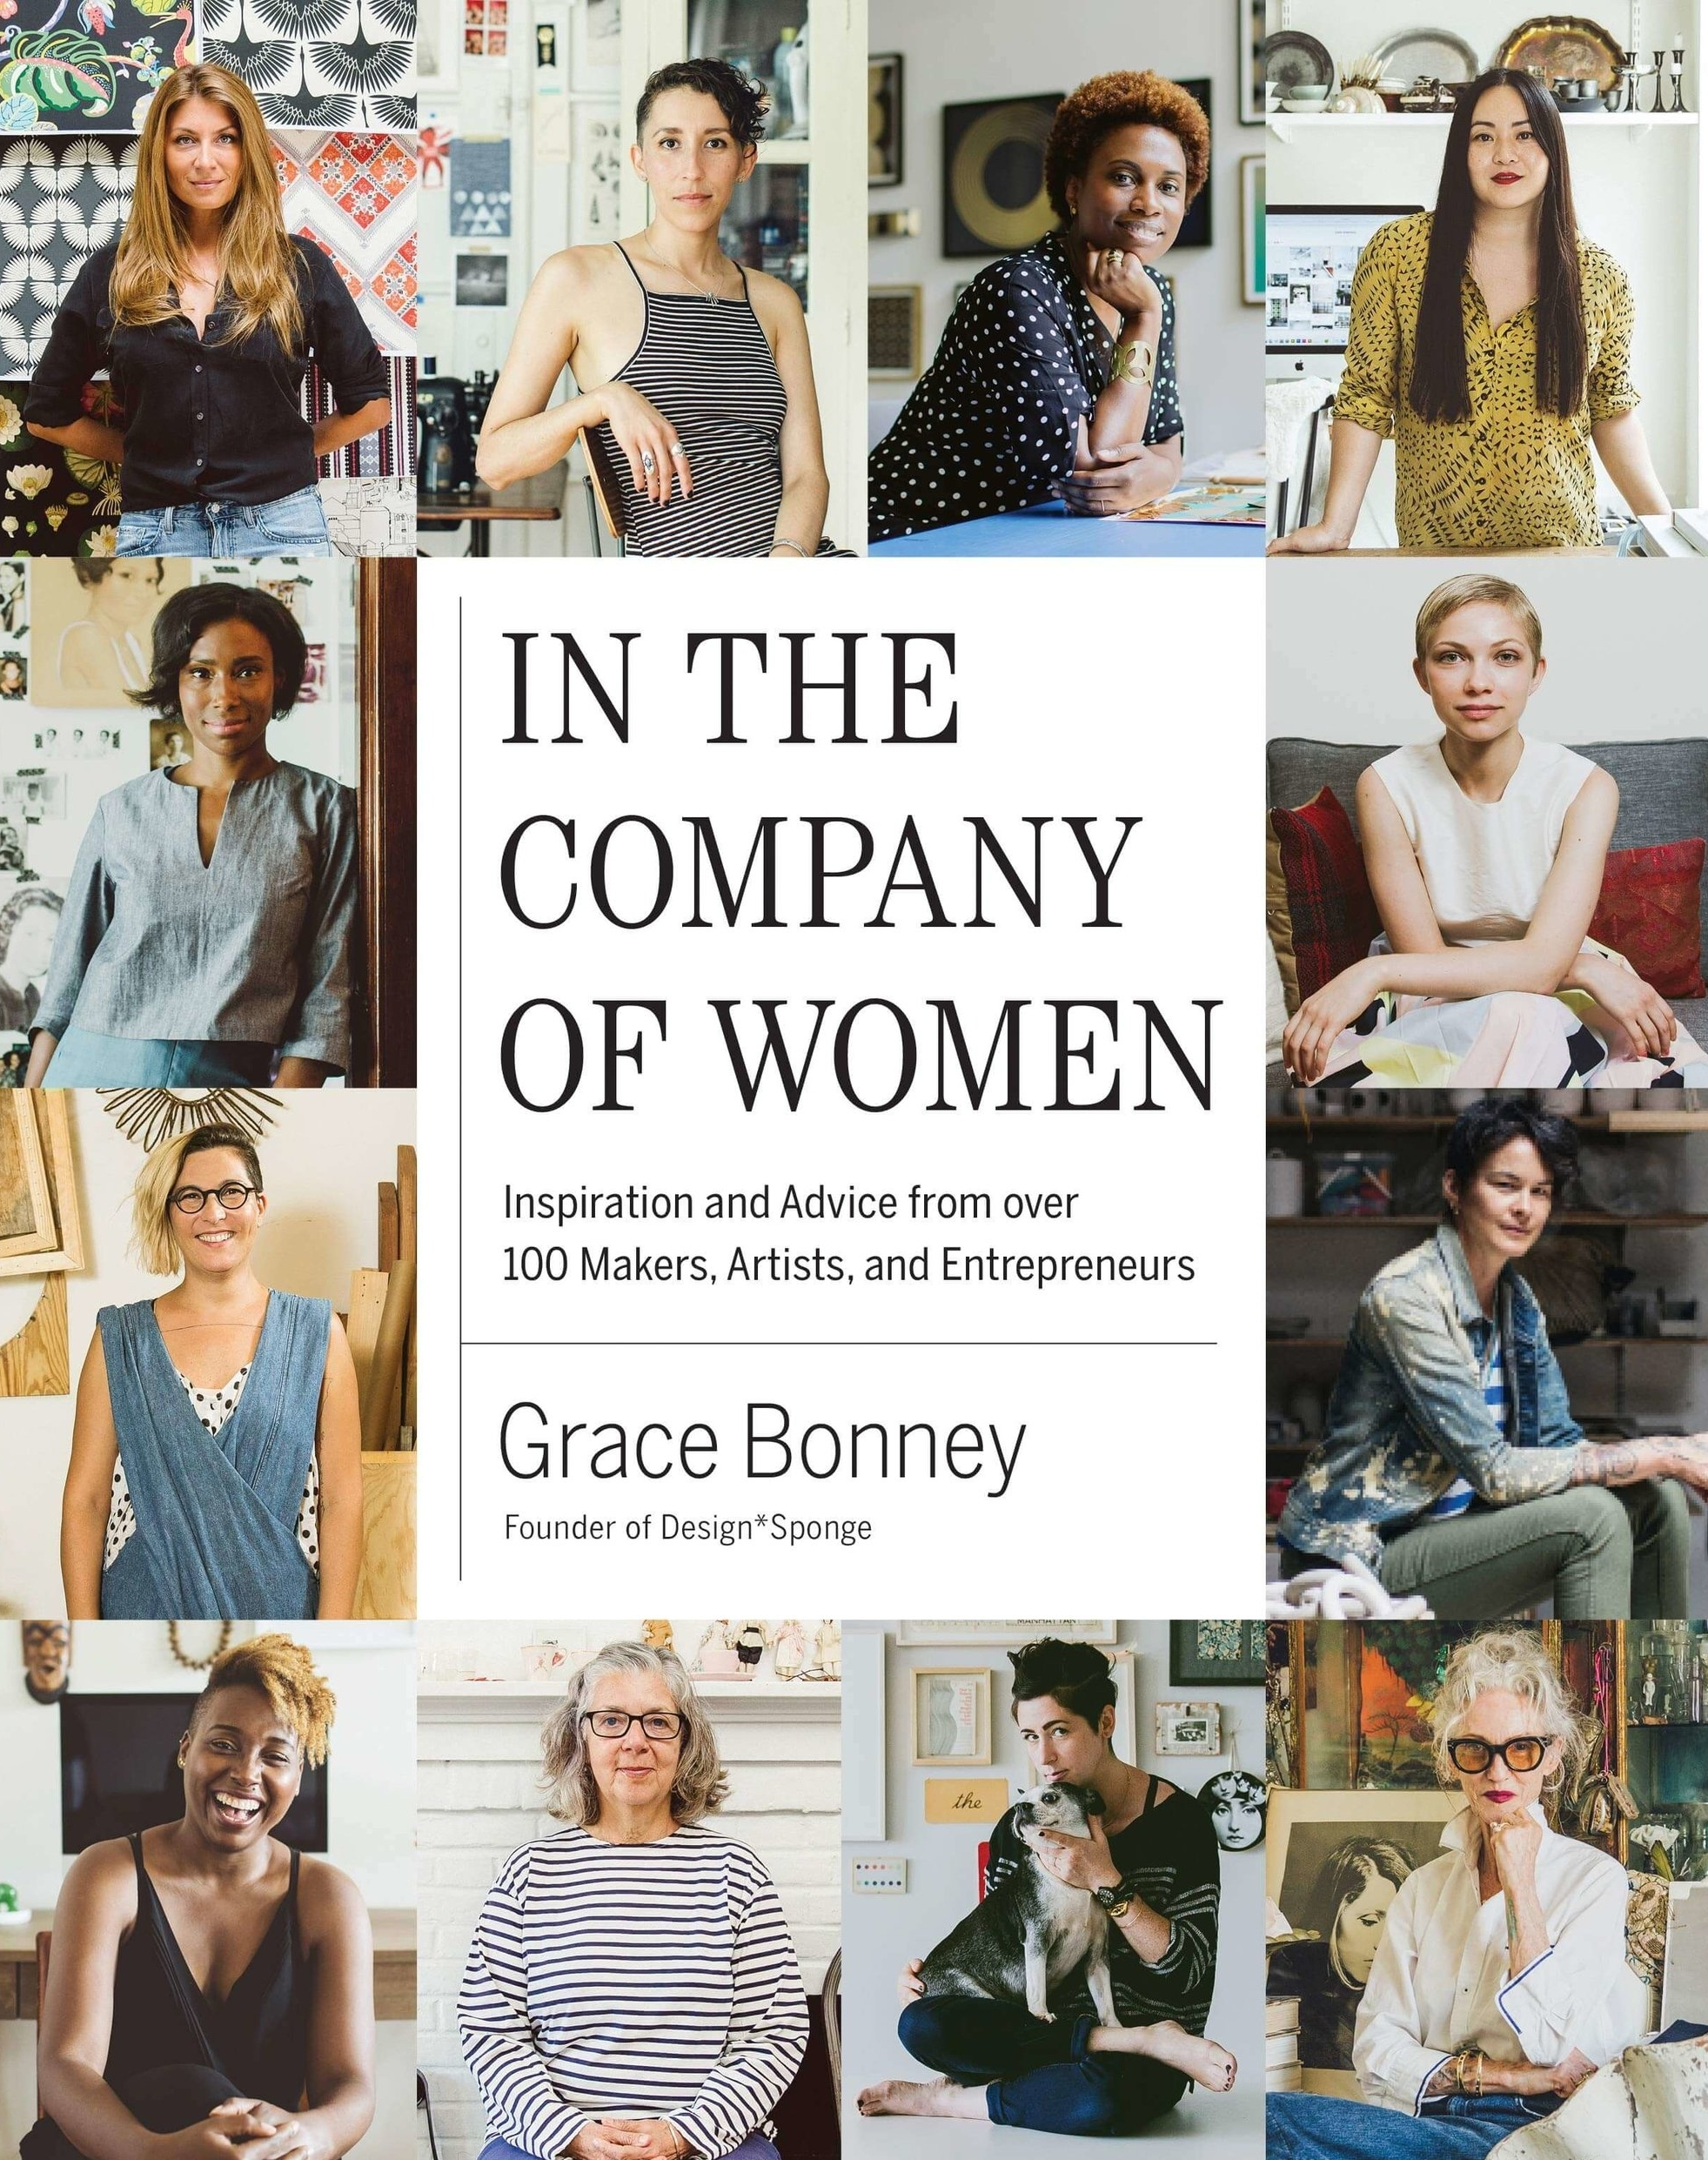 In the Company of Women: Inspiration and Advice from over 100 Makers, Artists, and Entrepreneurs Hardcover